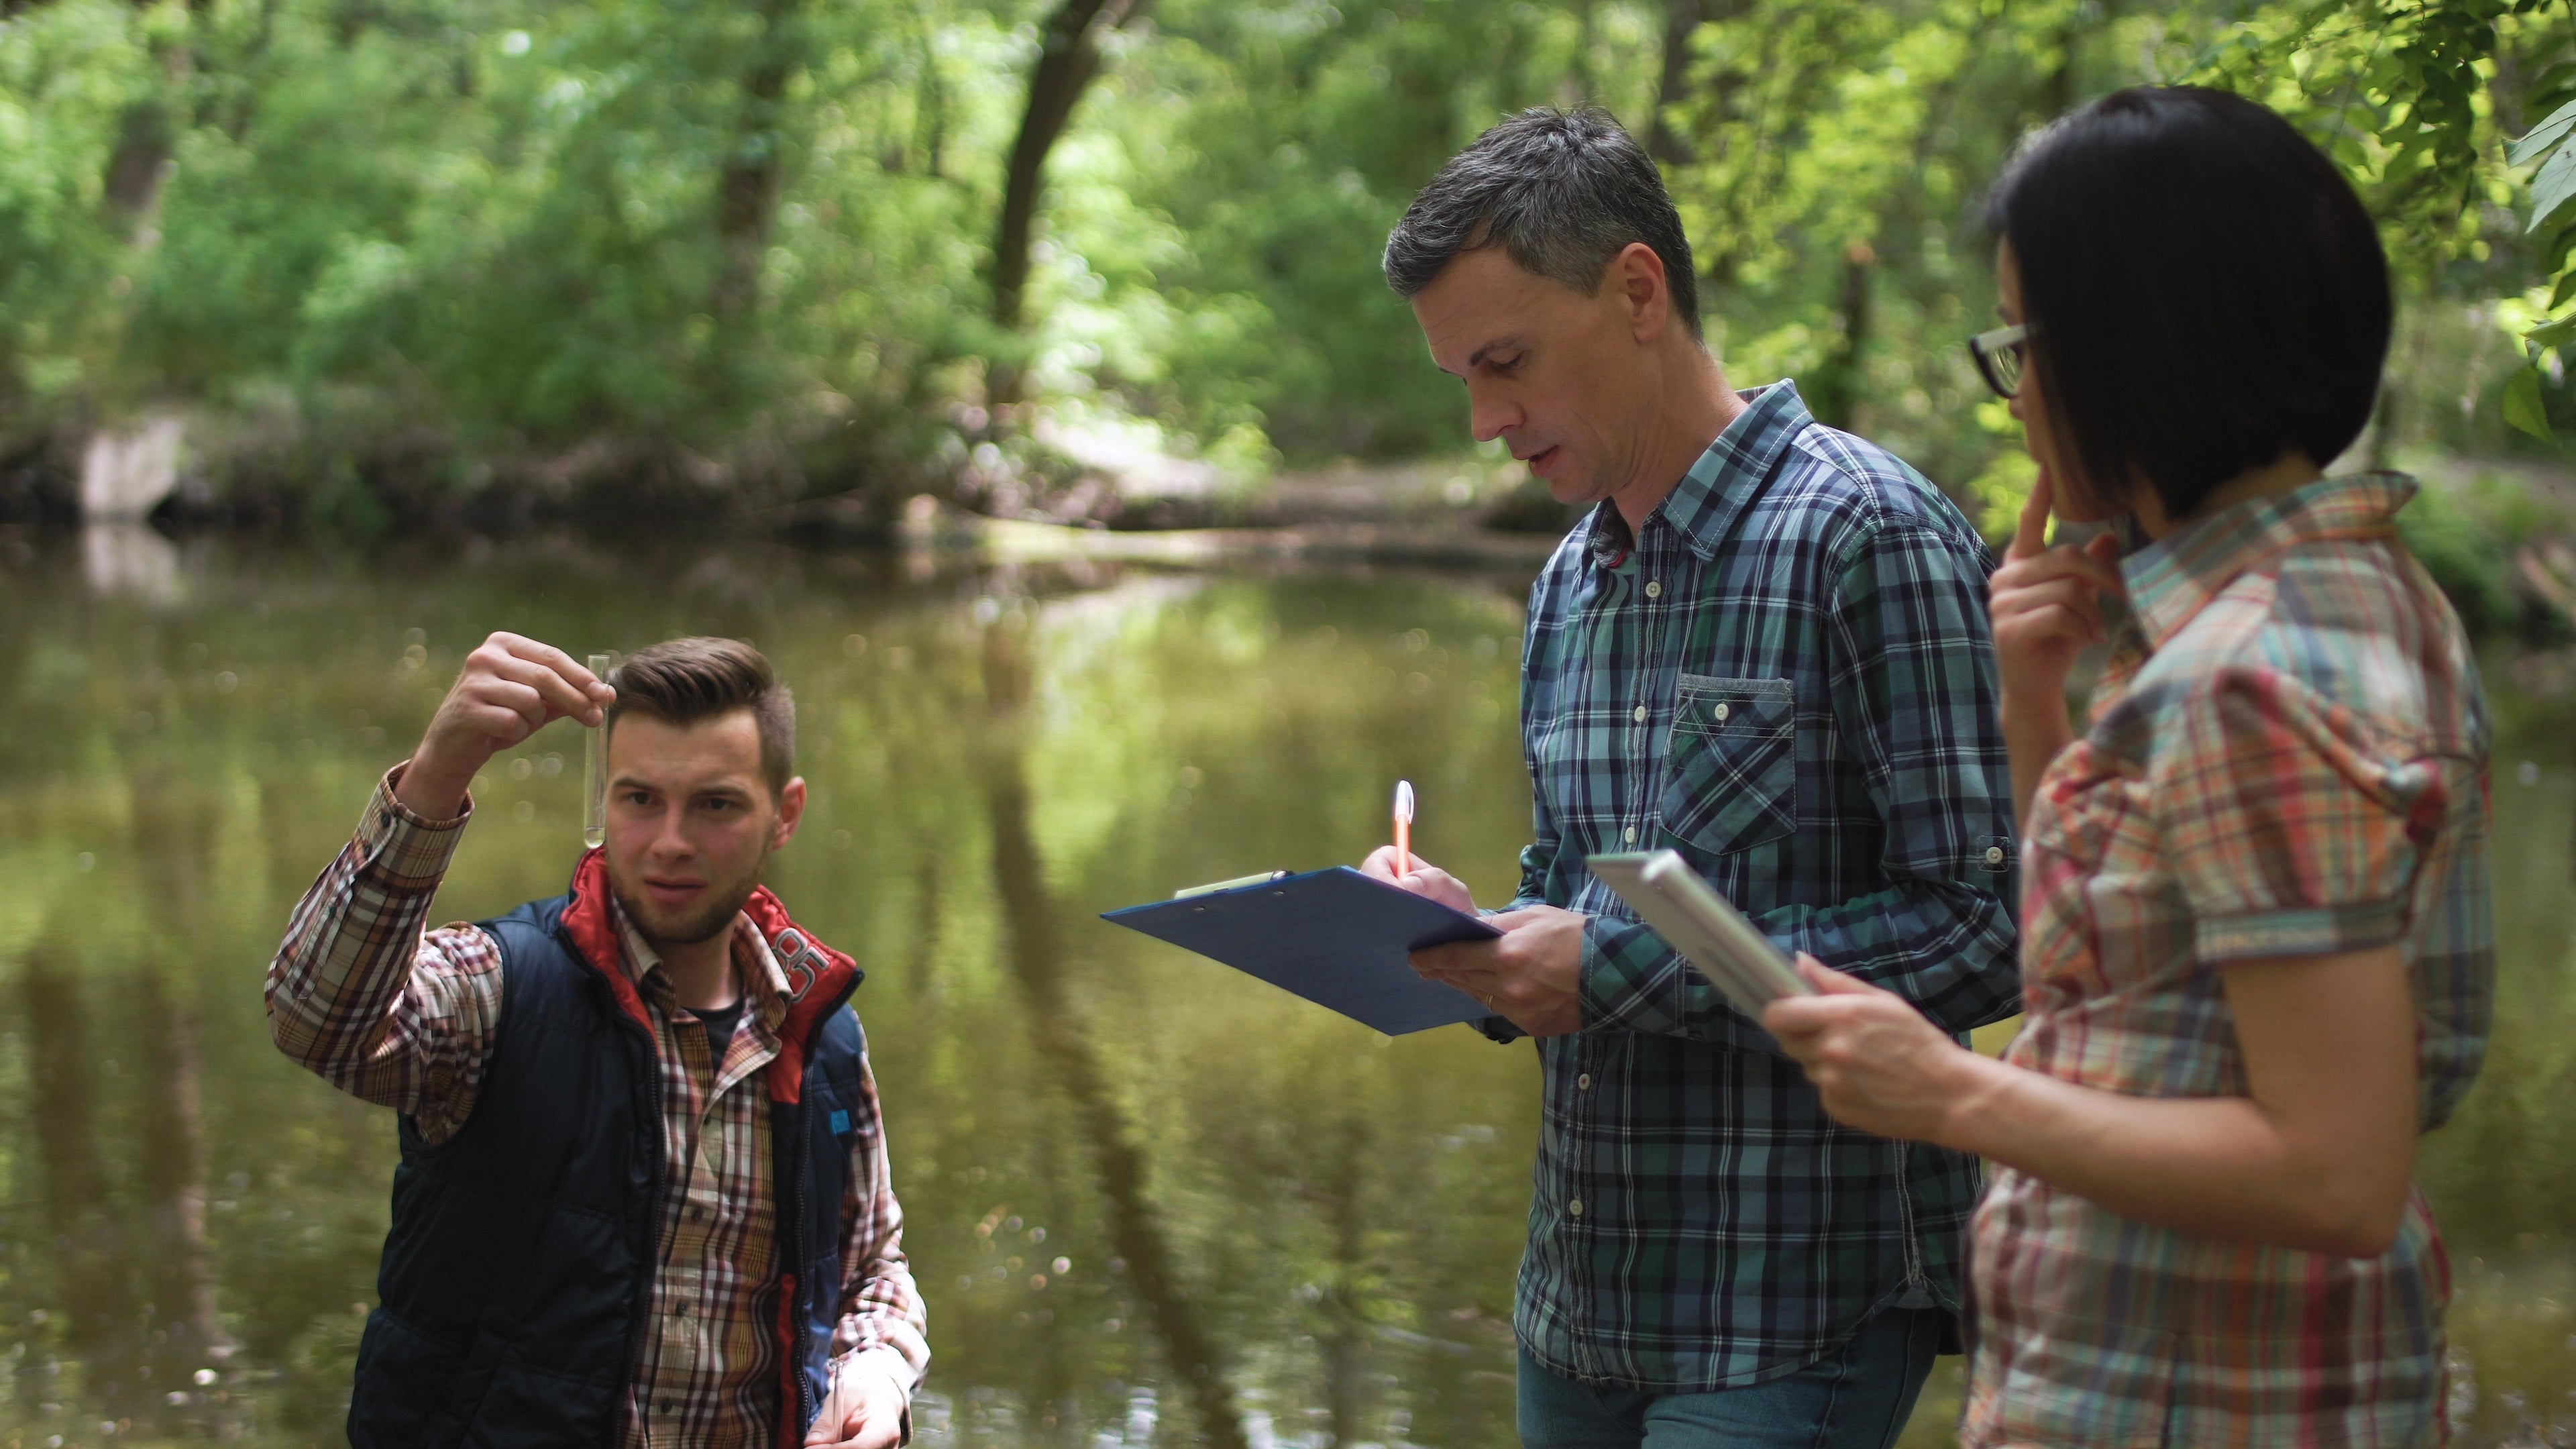 Three scientists analyze a water sample from a lake.